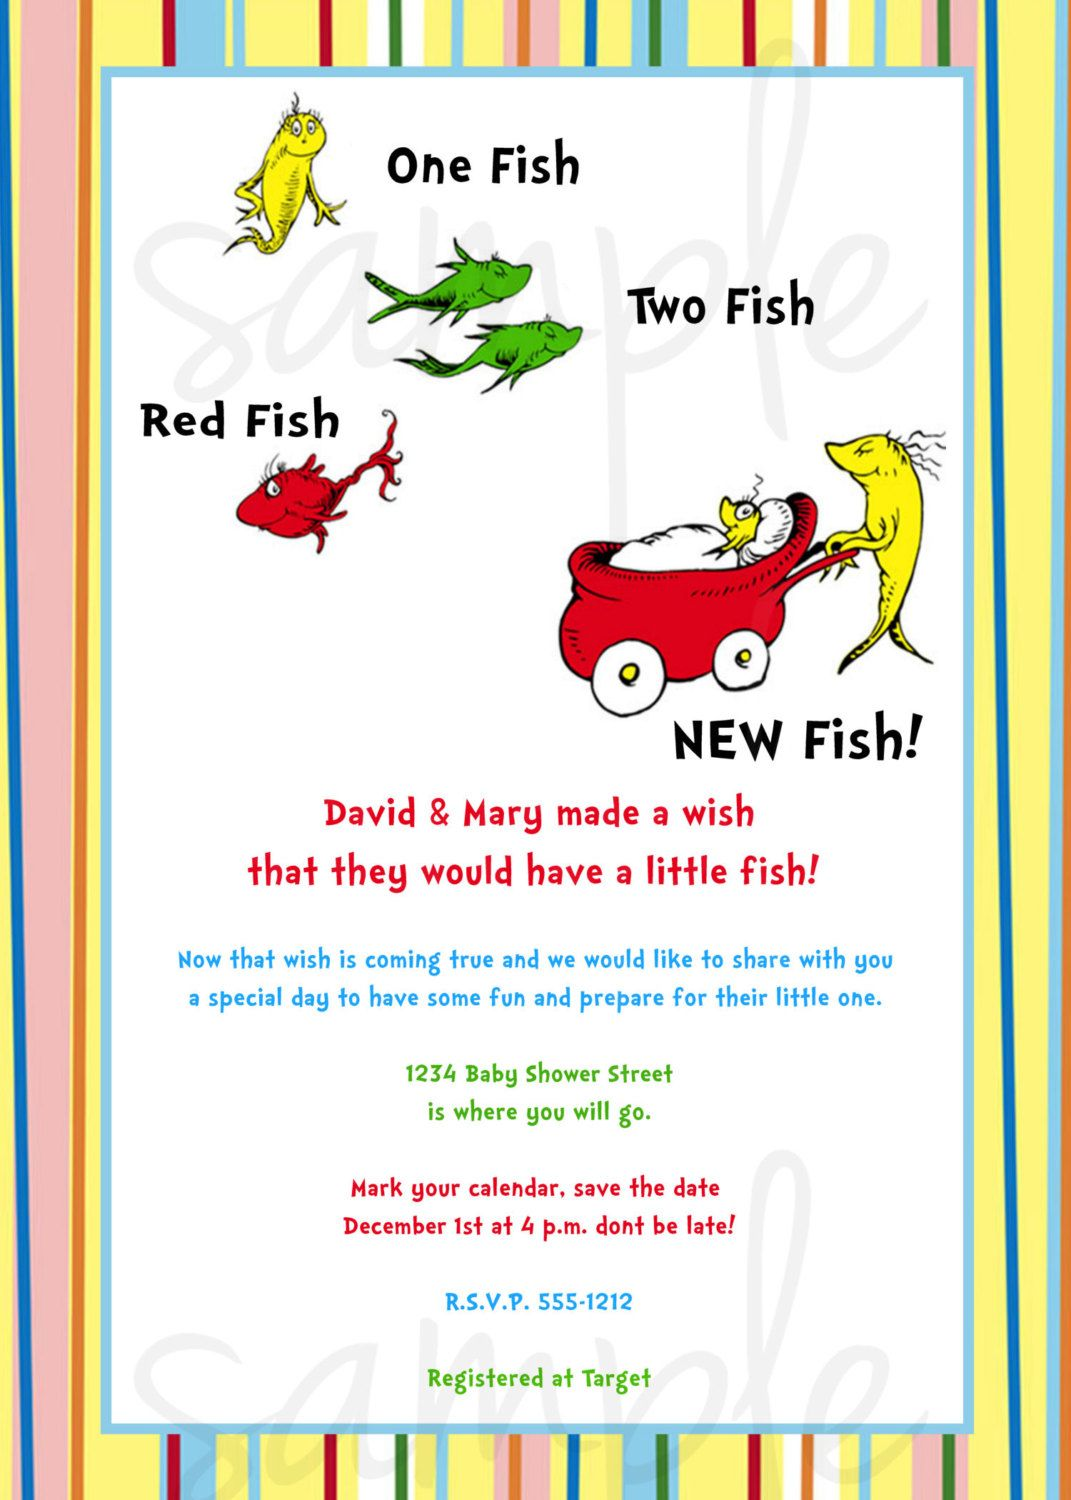 Guess the number of fish One fish two fish red fish blue fish